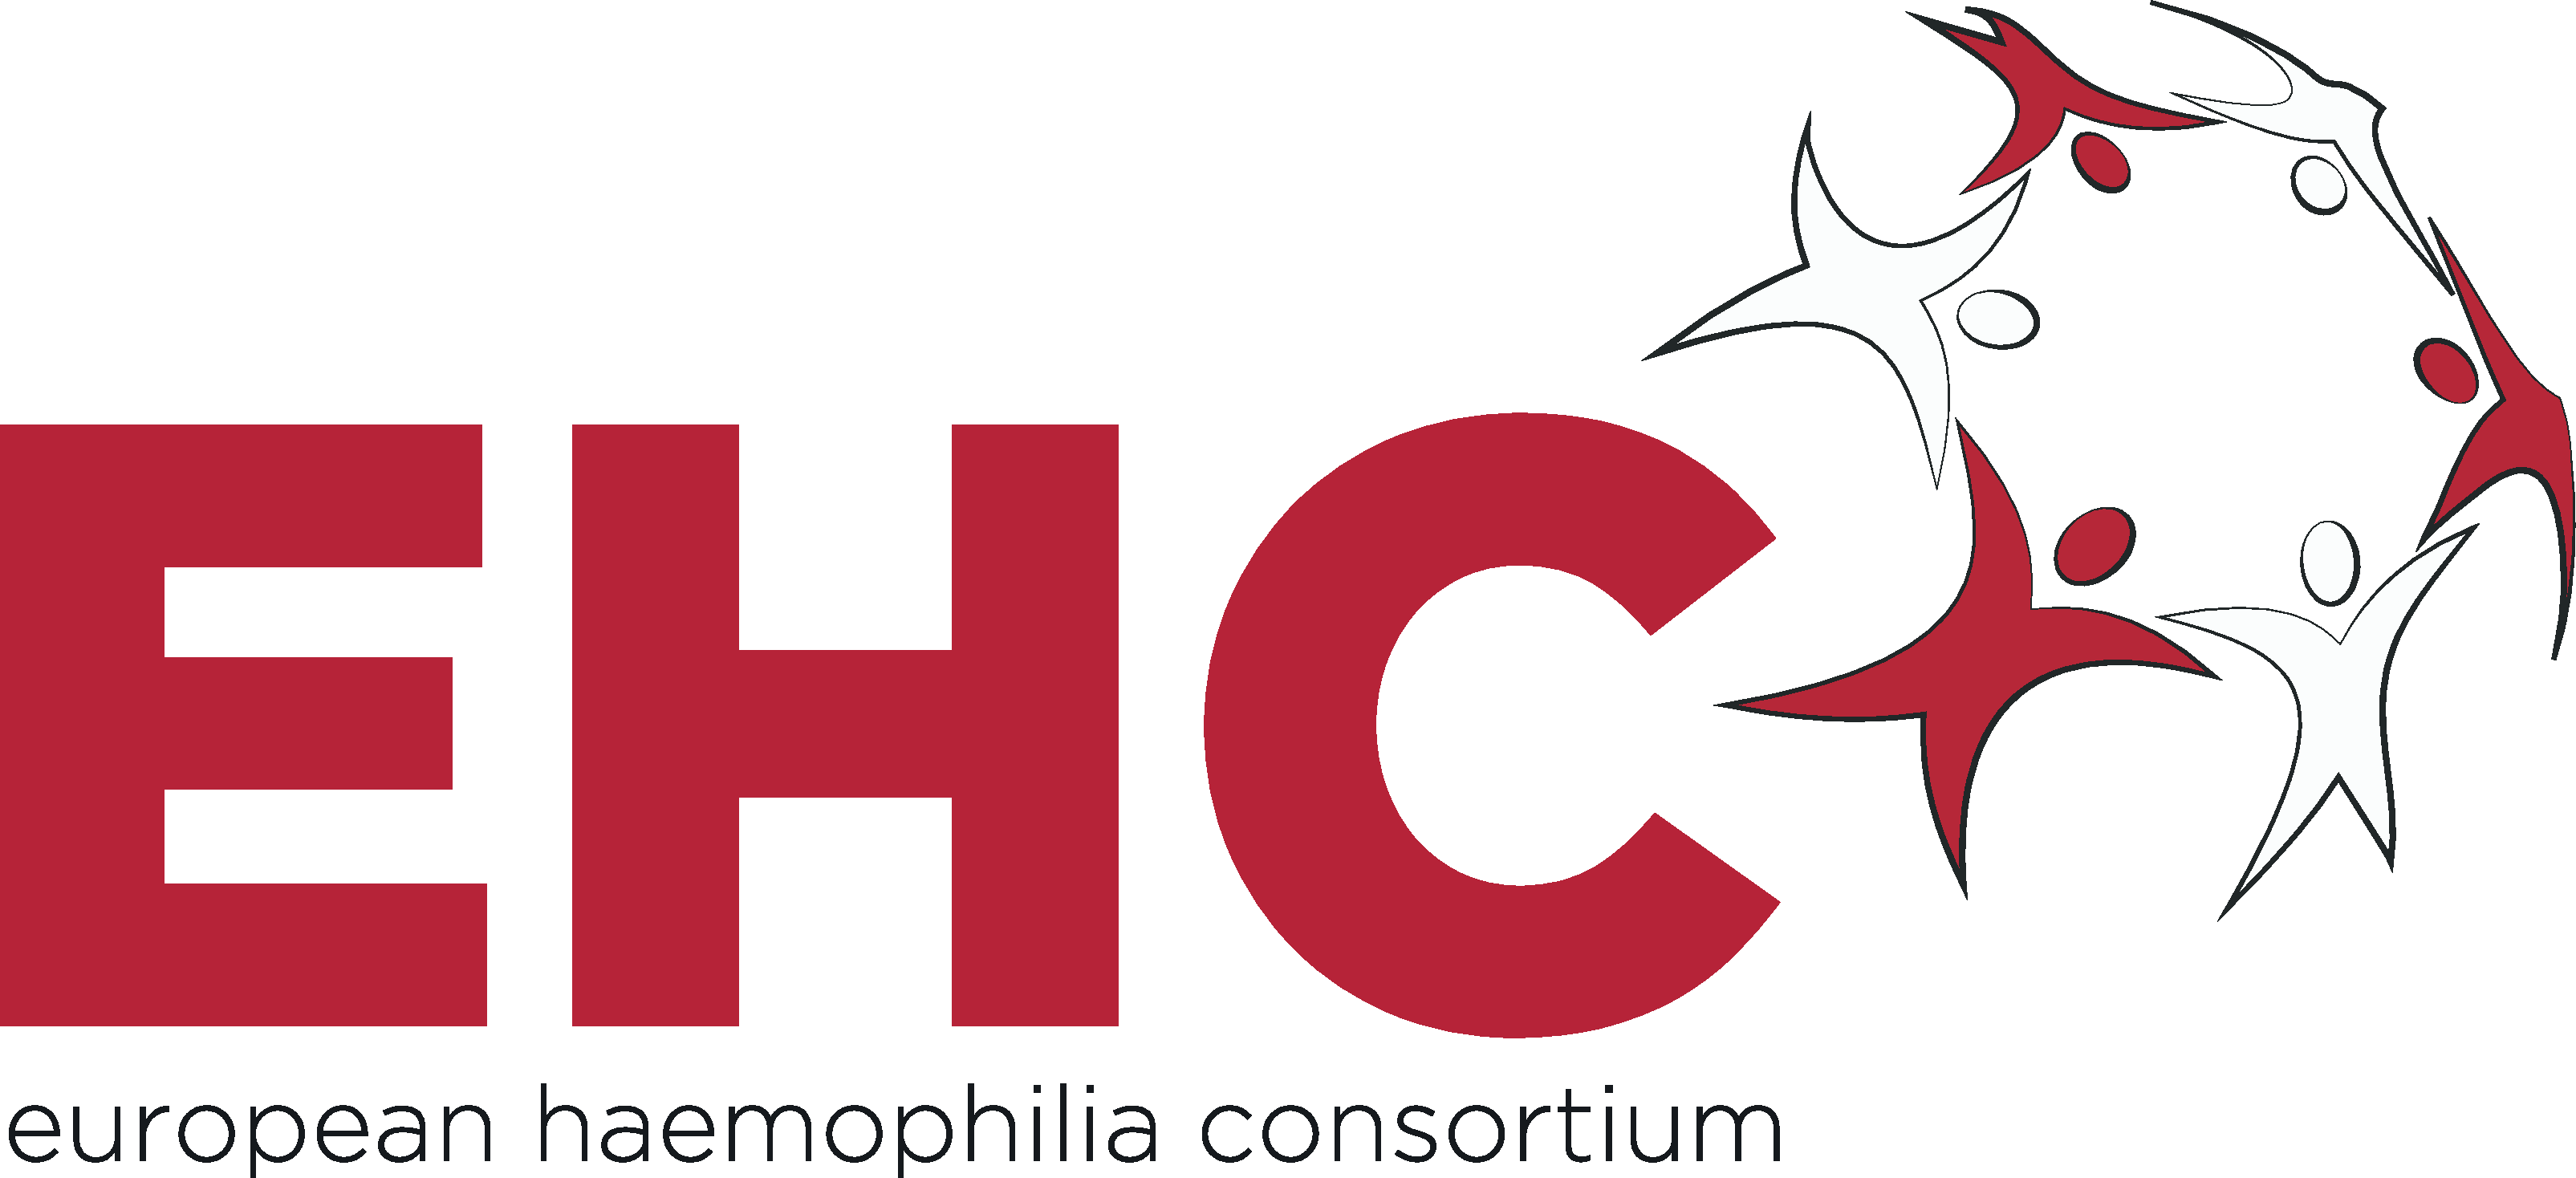 EHC – European Haemophilia Consortium -  - /events/ehc-round-table-of-stakeholders-on-orthopaedic-aspects-in-haemophilia-care/